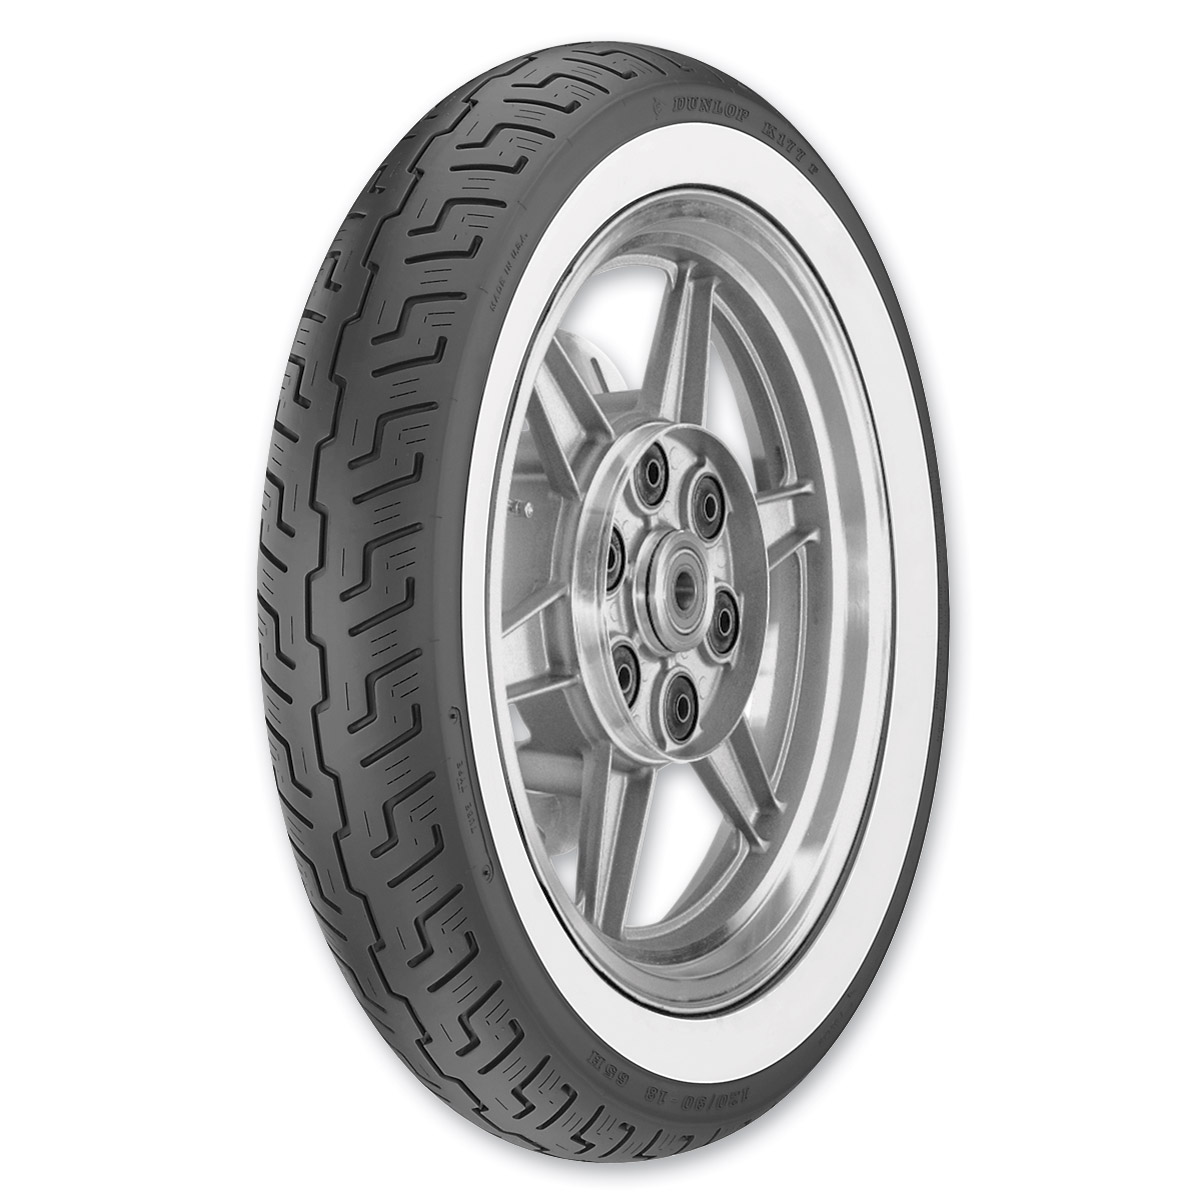 Dunlop K177 120/90-18 Wide Whitewall Front Tire